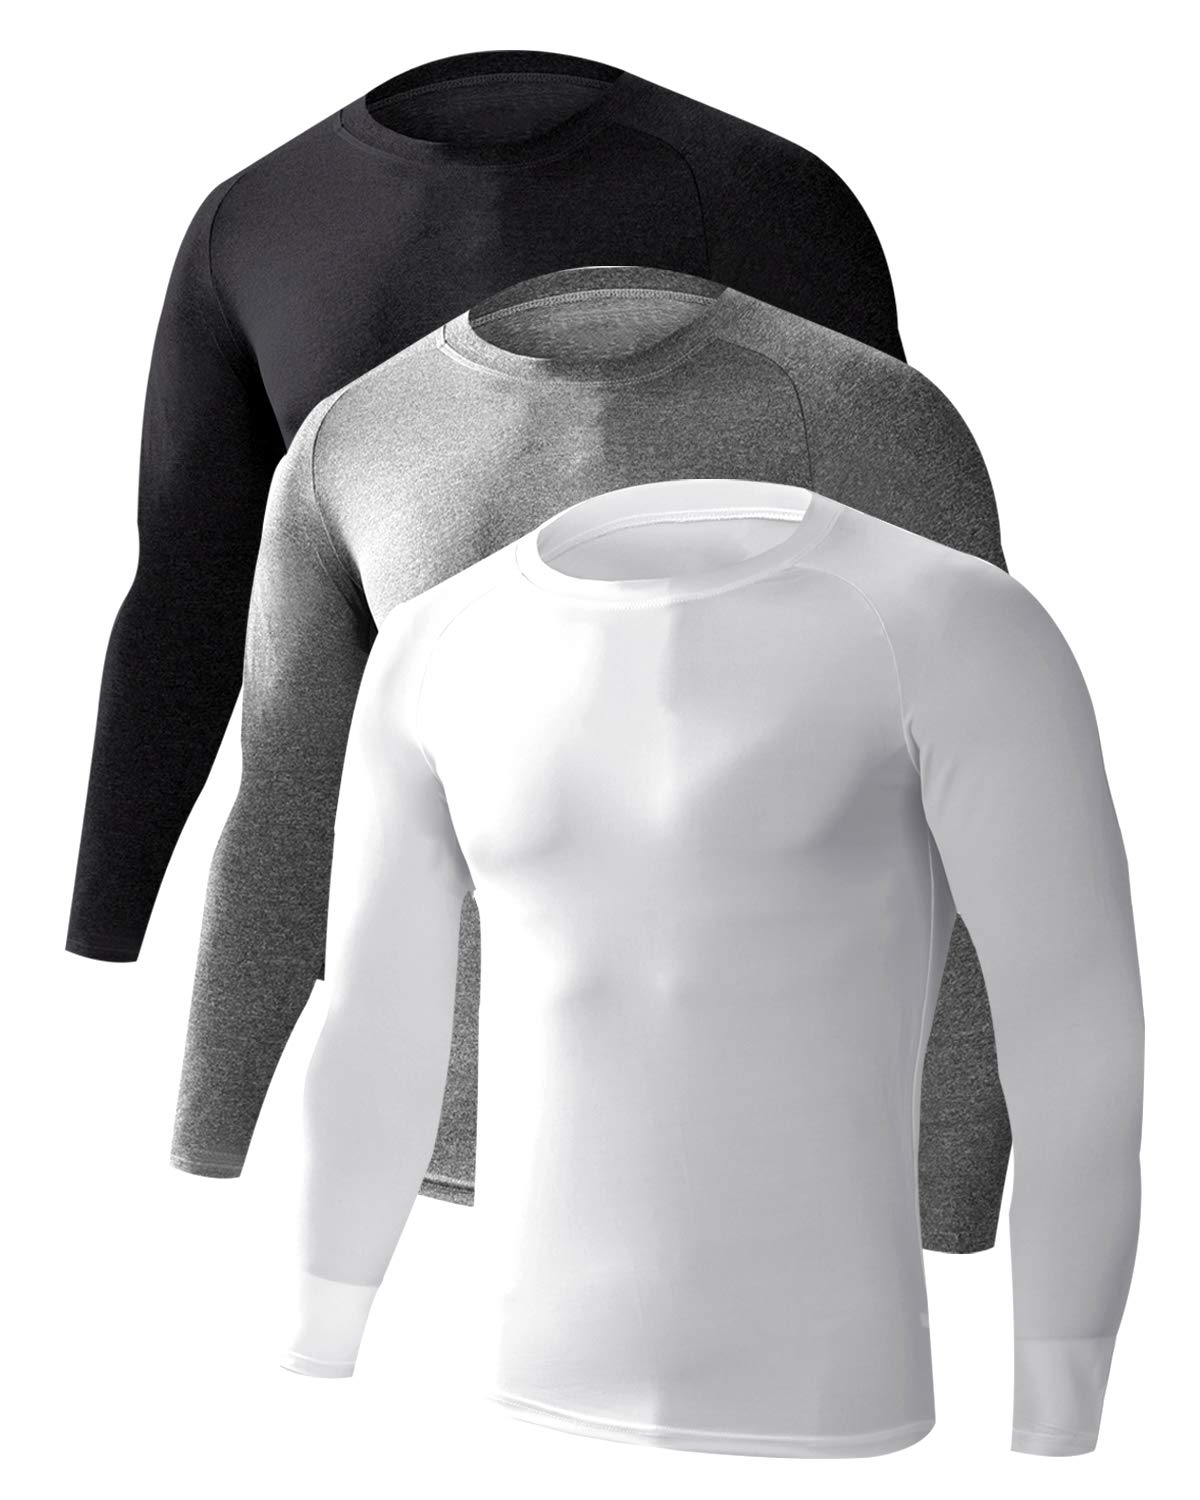 LNJLVI Men's 3 Pack Athletic Compression Shirts Base Layer Long Sleeve T-Shirts